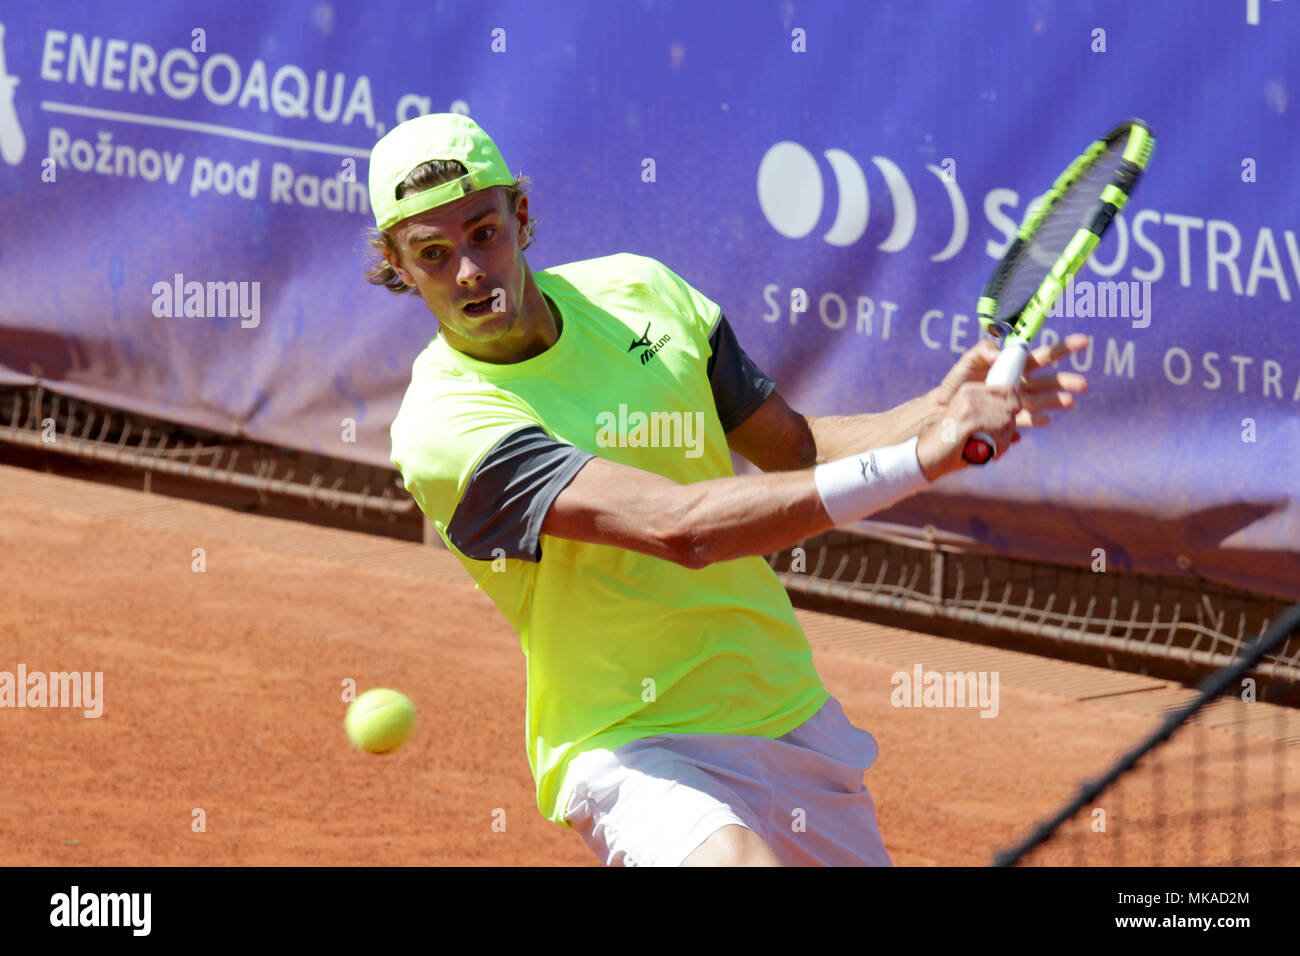 Ostrava, Czech Republic. 06th May, 2018. Belgian player De Greef won the singles competition at the Prosperita Open men's tennis challenger tournament in Ostrava (red clay, prize money 64,000 euros), Czech Republic, May 6, 2018. Credit: Petr Sznapka/CTK Photo/Alamy Live News - Stock Image